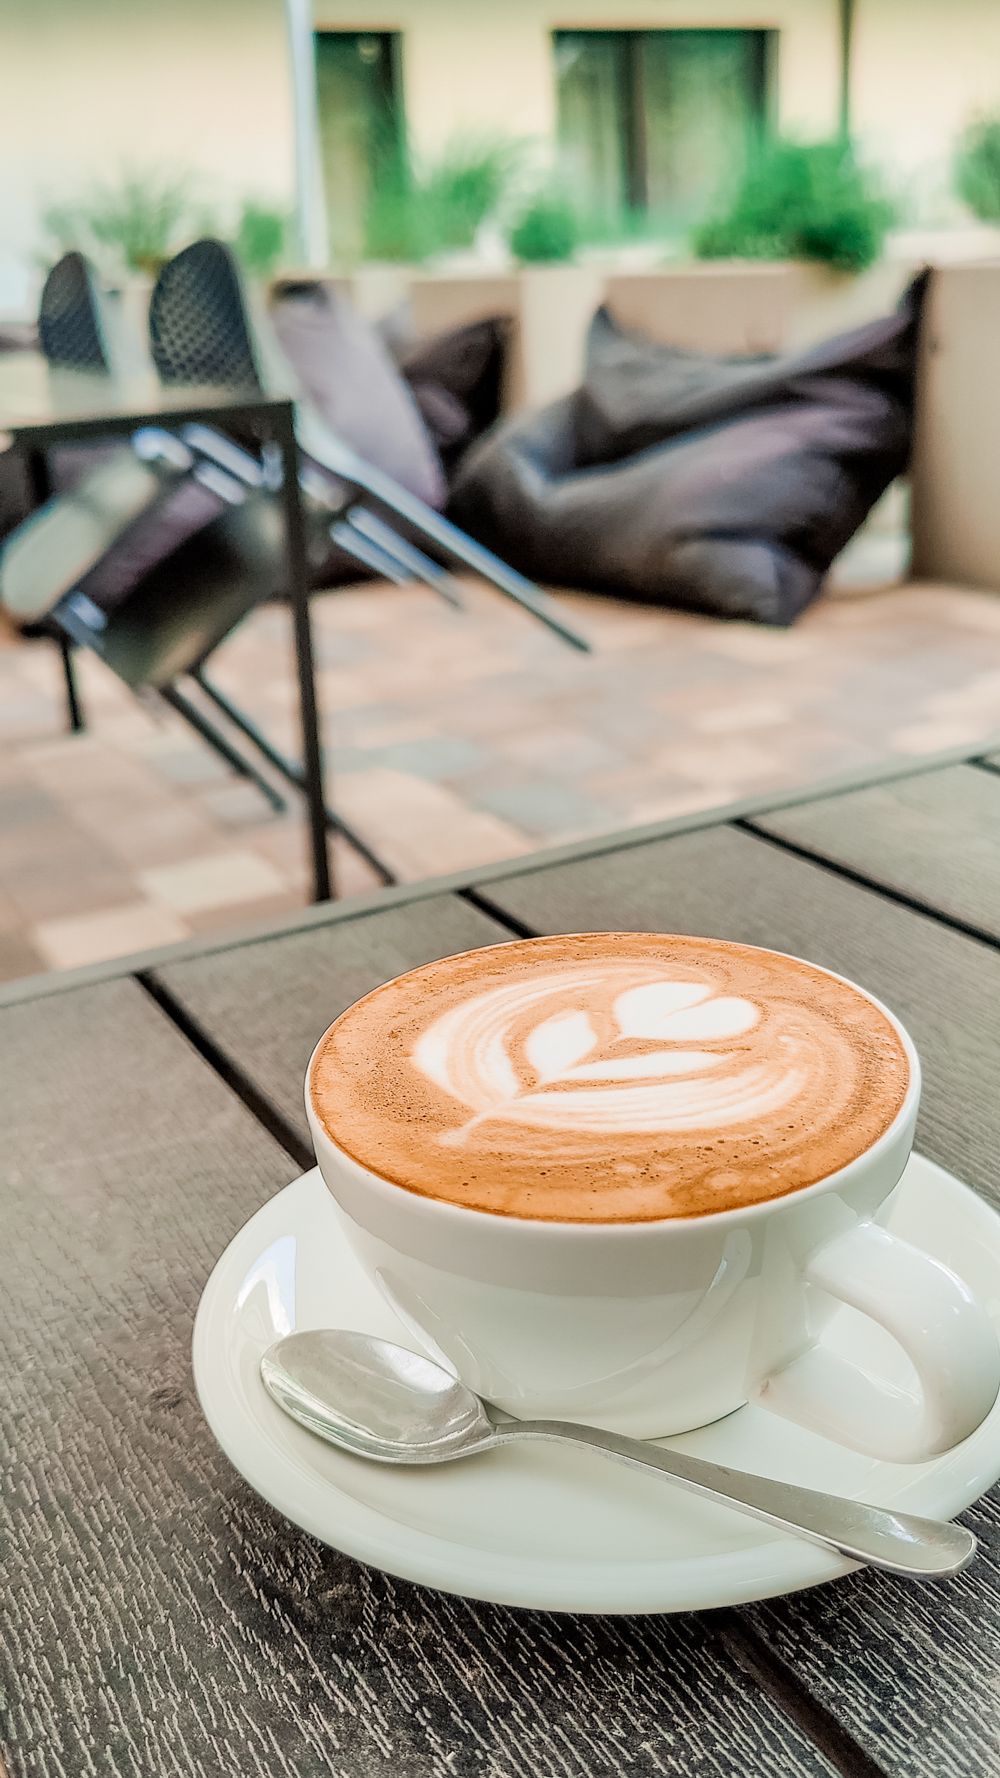 Flat white at The Nook Specialty Coffeeshop - 10 must-visit stylish specialty coffee shops in Budapest, Hungary   Aliz's Wonderland